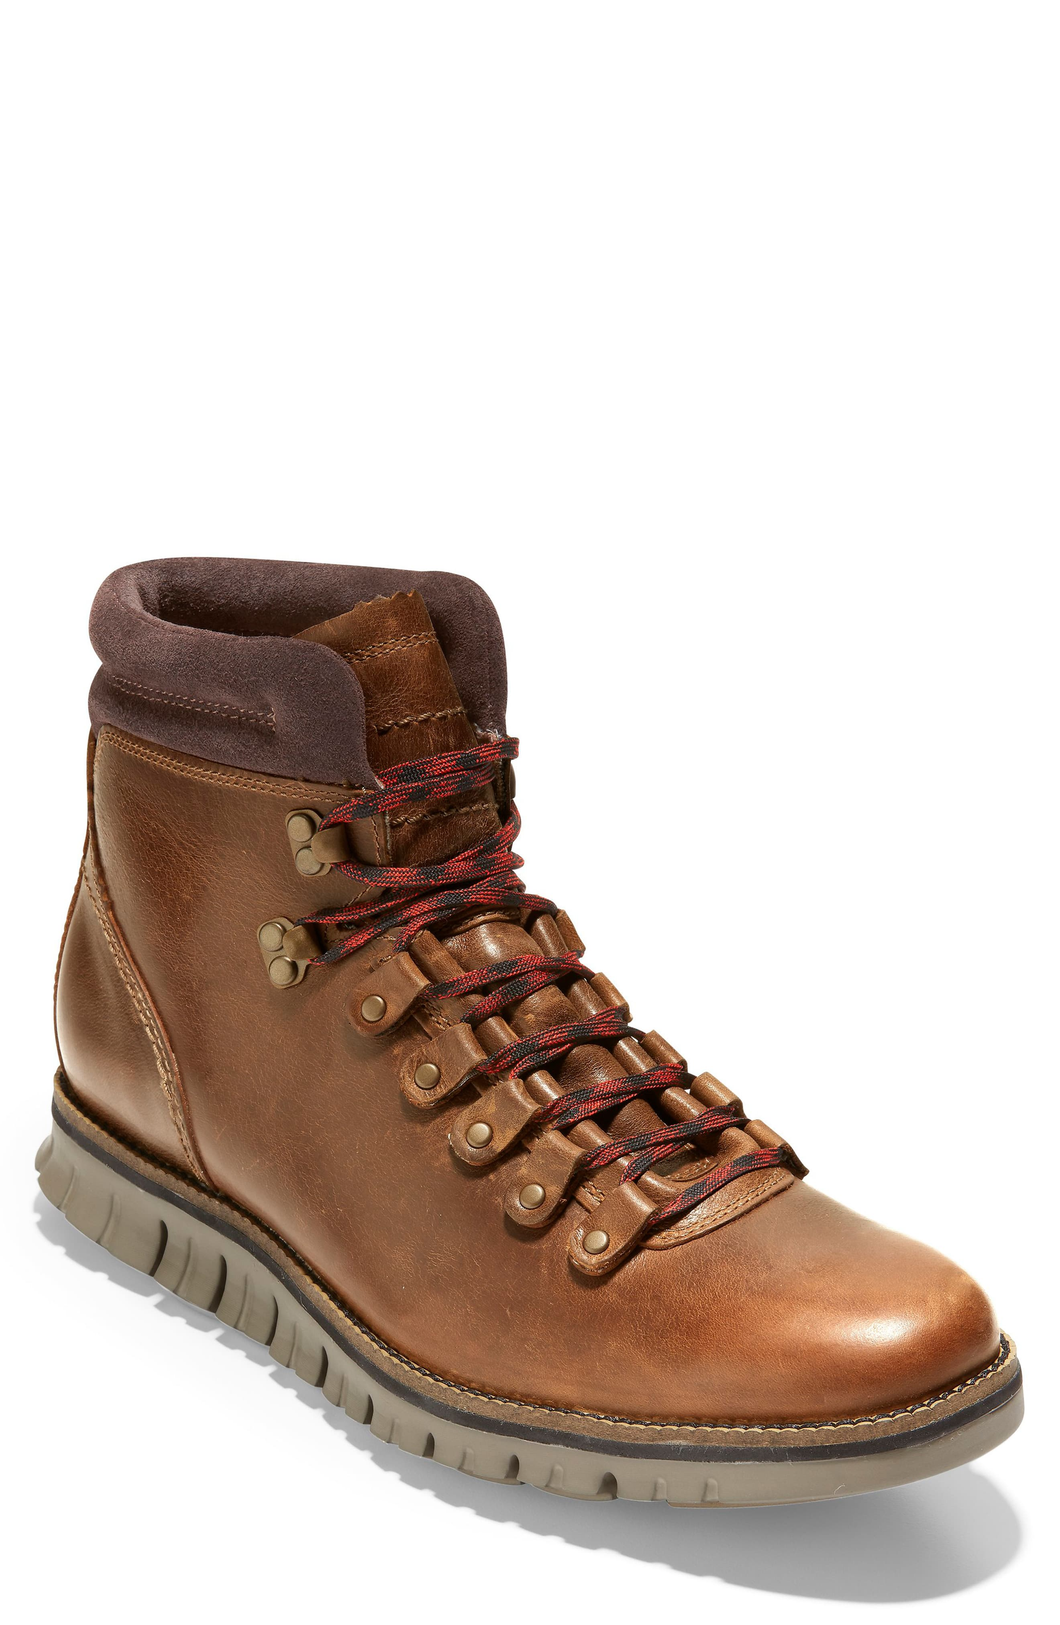 Men's Waterproof Hiking Boot